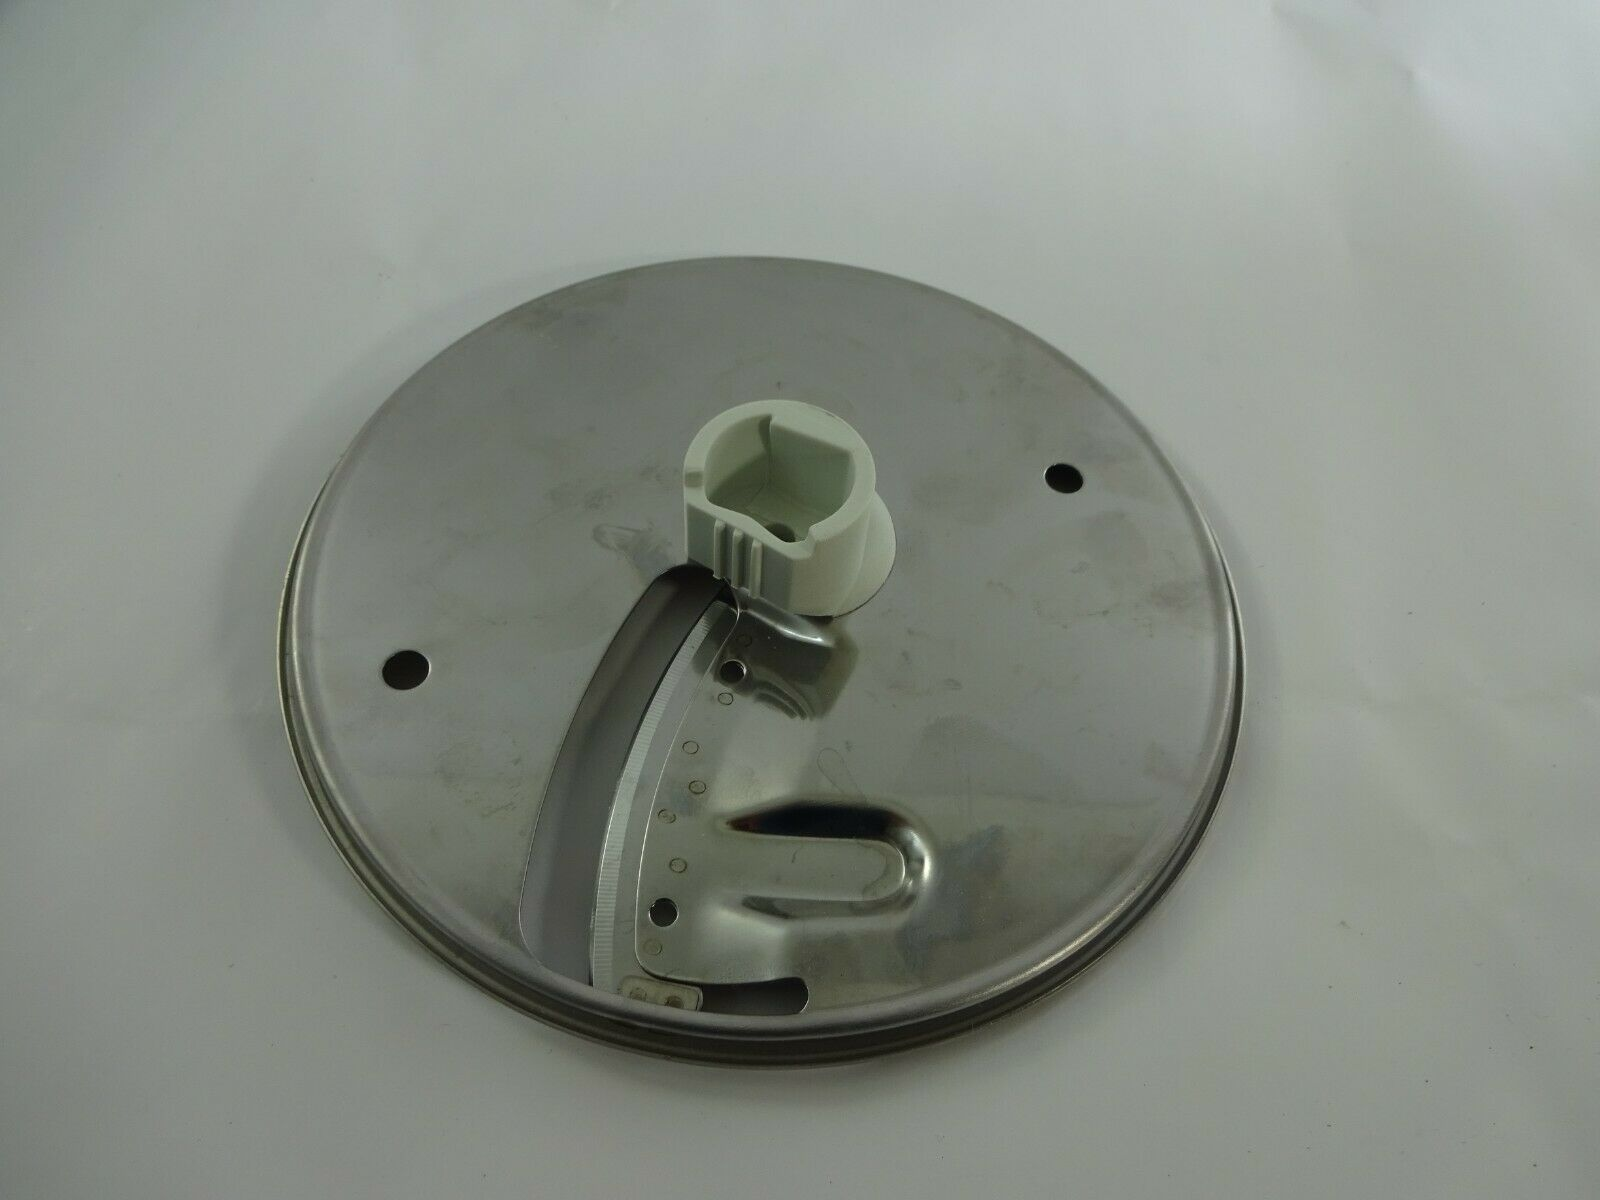 Primary image for Black & Decker Food Processor FP1000 Replace Part: Thick Slicing Disk Blade 4mm